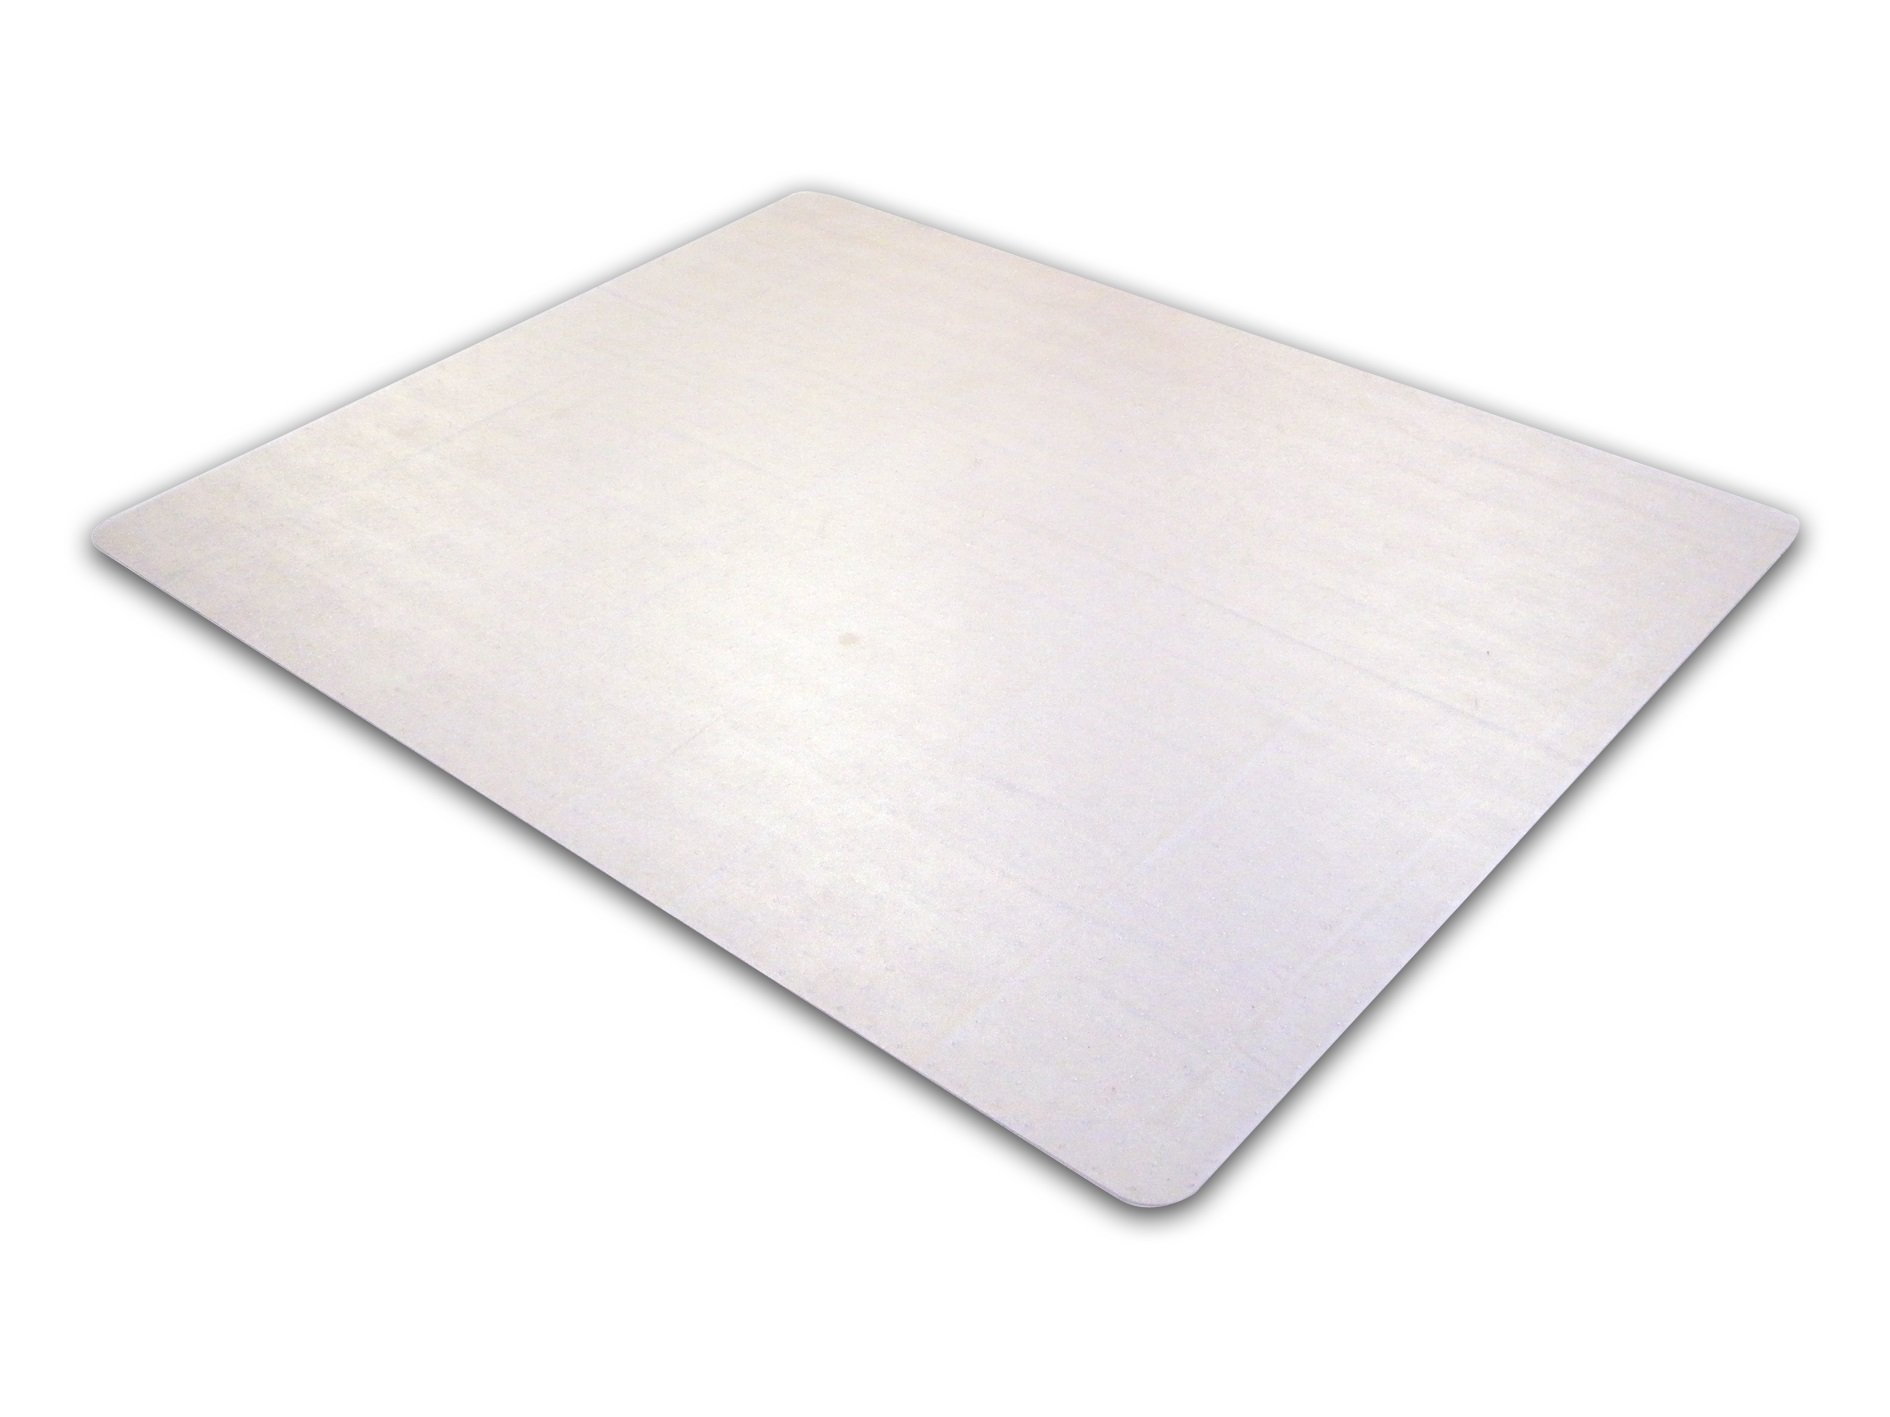 Cleartex Advantagemat, PVC Clear Chair Mat for Low Pile Carpets (1/4'' or Less), Rectangular, Size 48'' x 79'' (FR1120025EV)